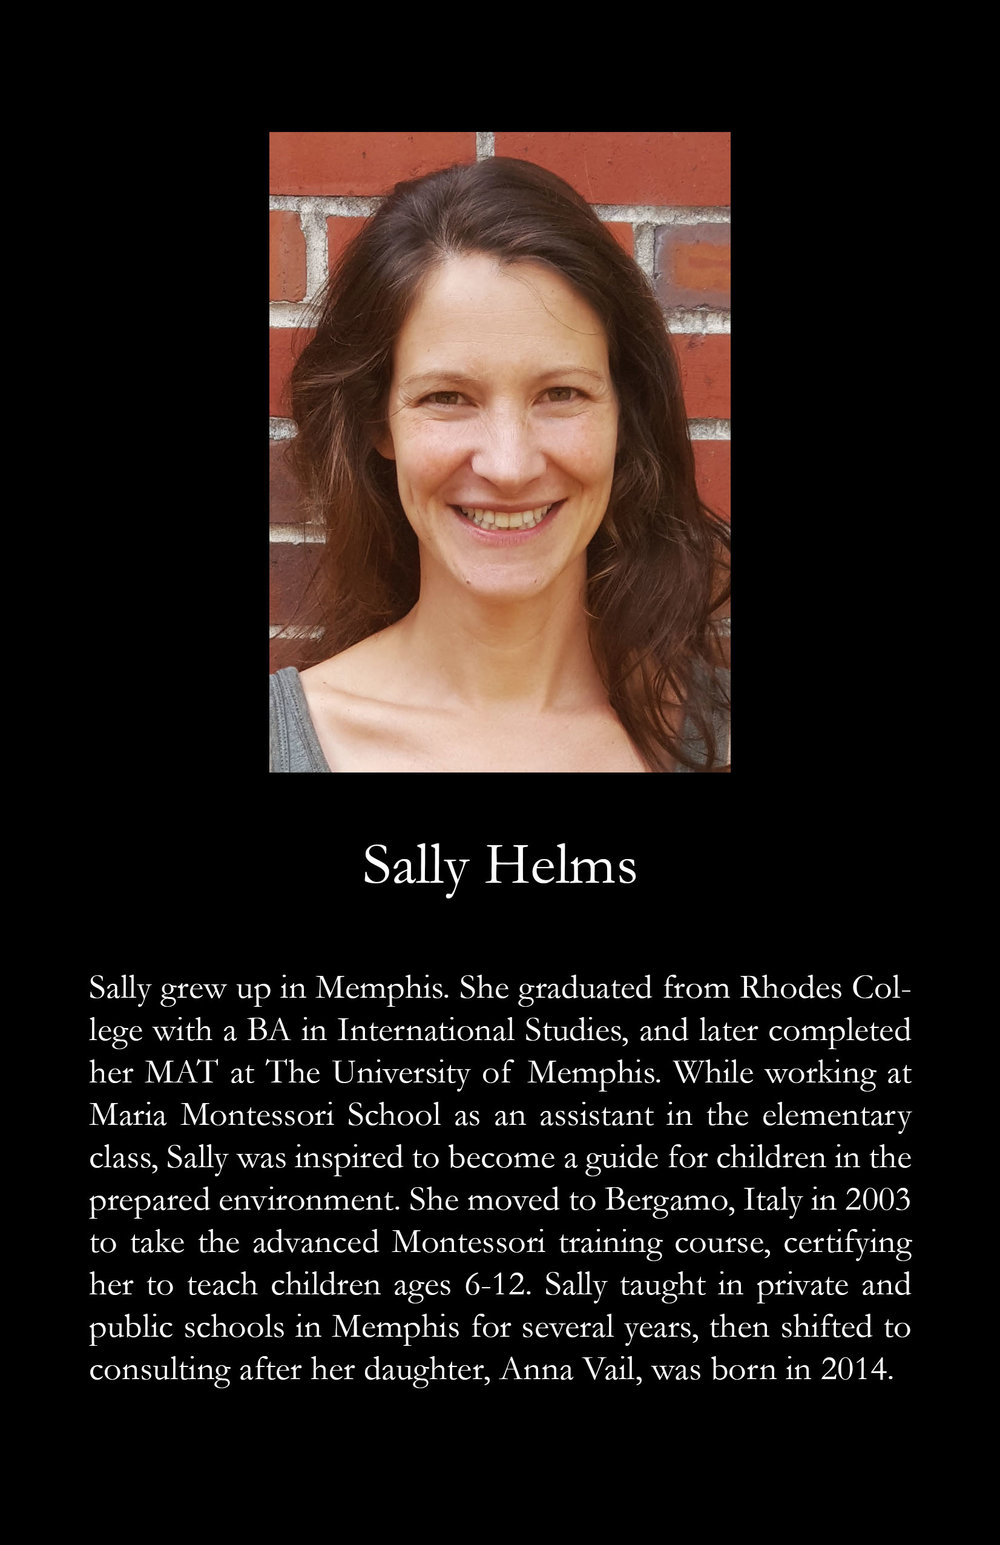 Sally Helms.jpg